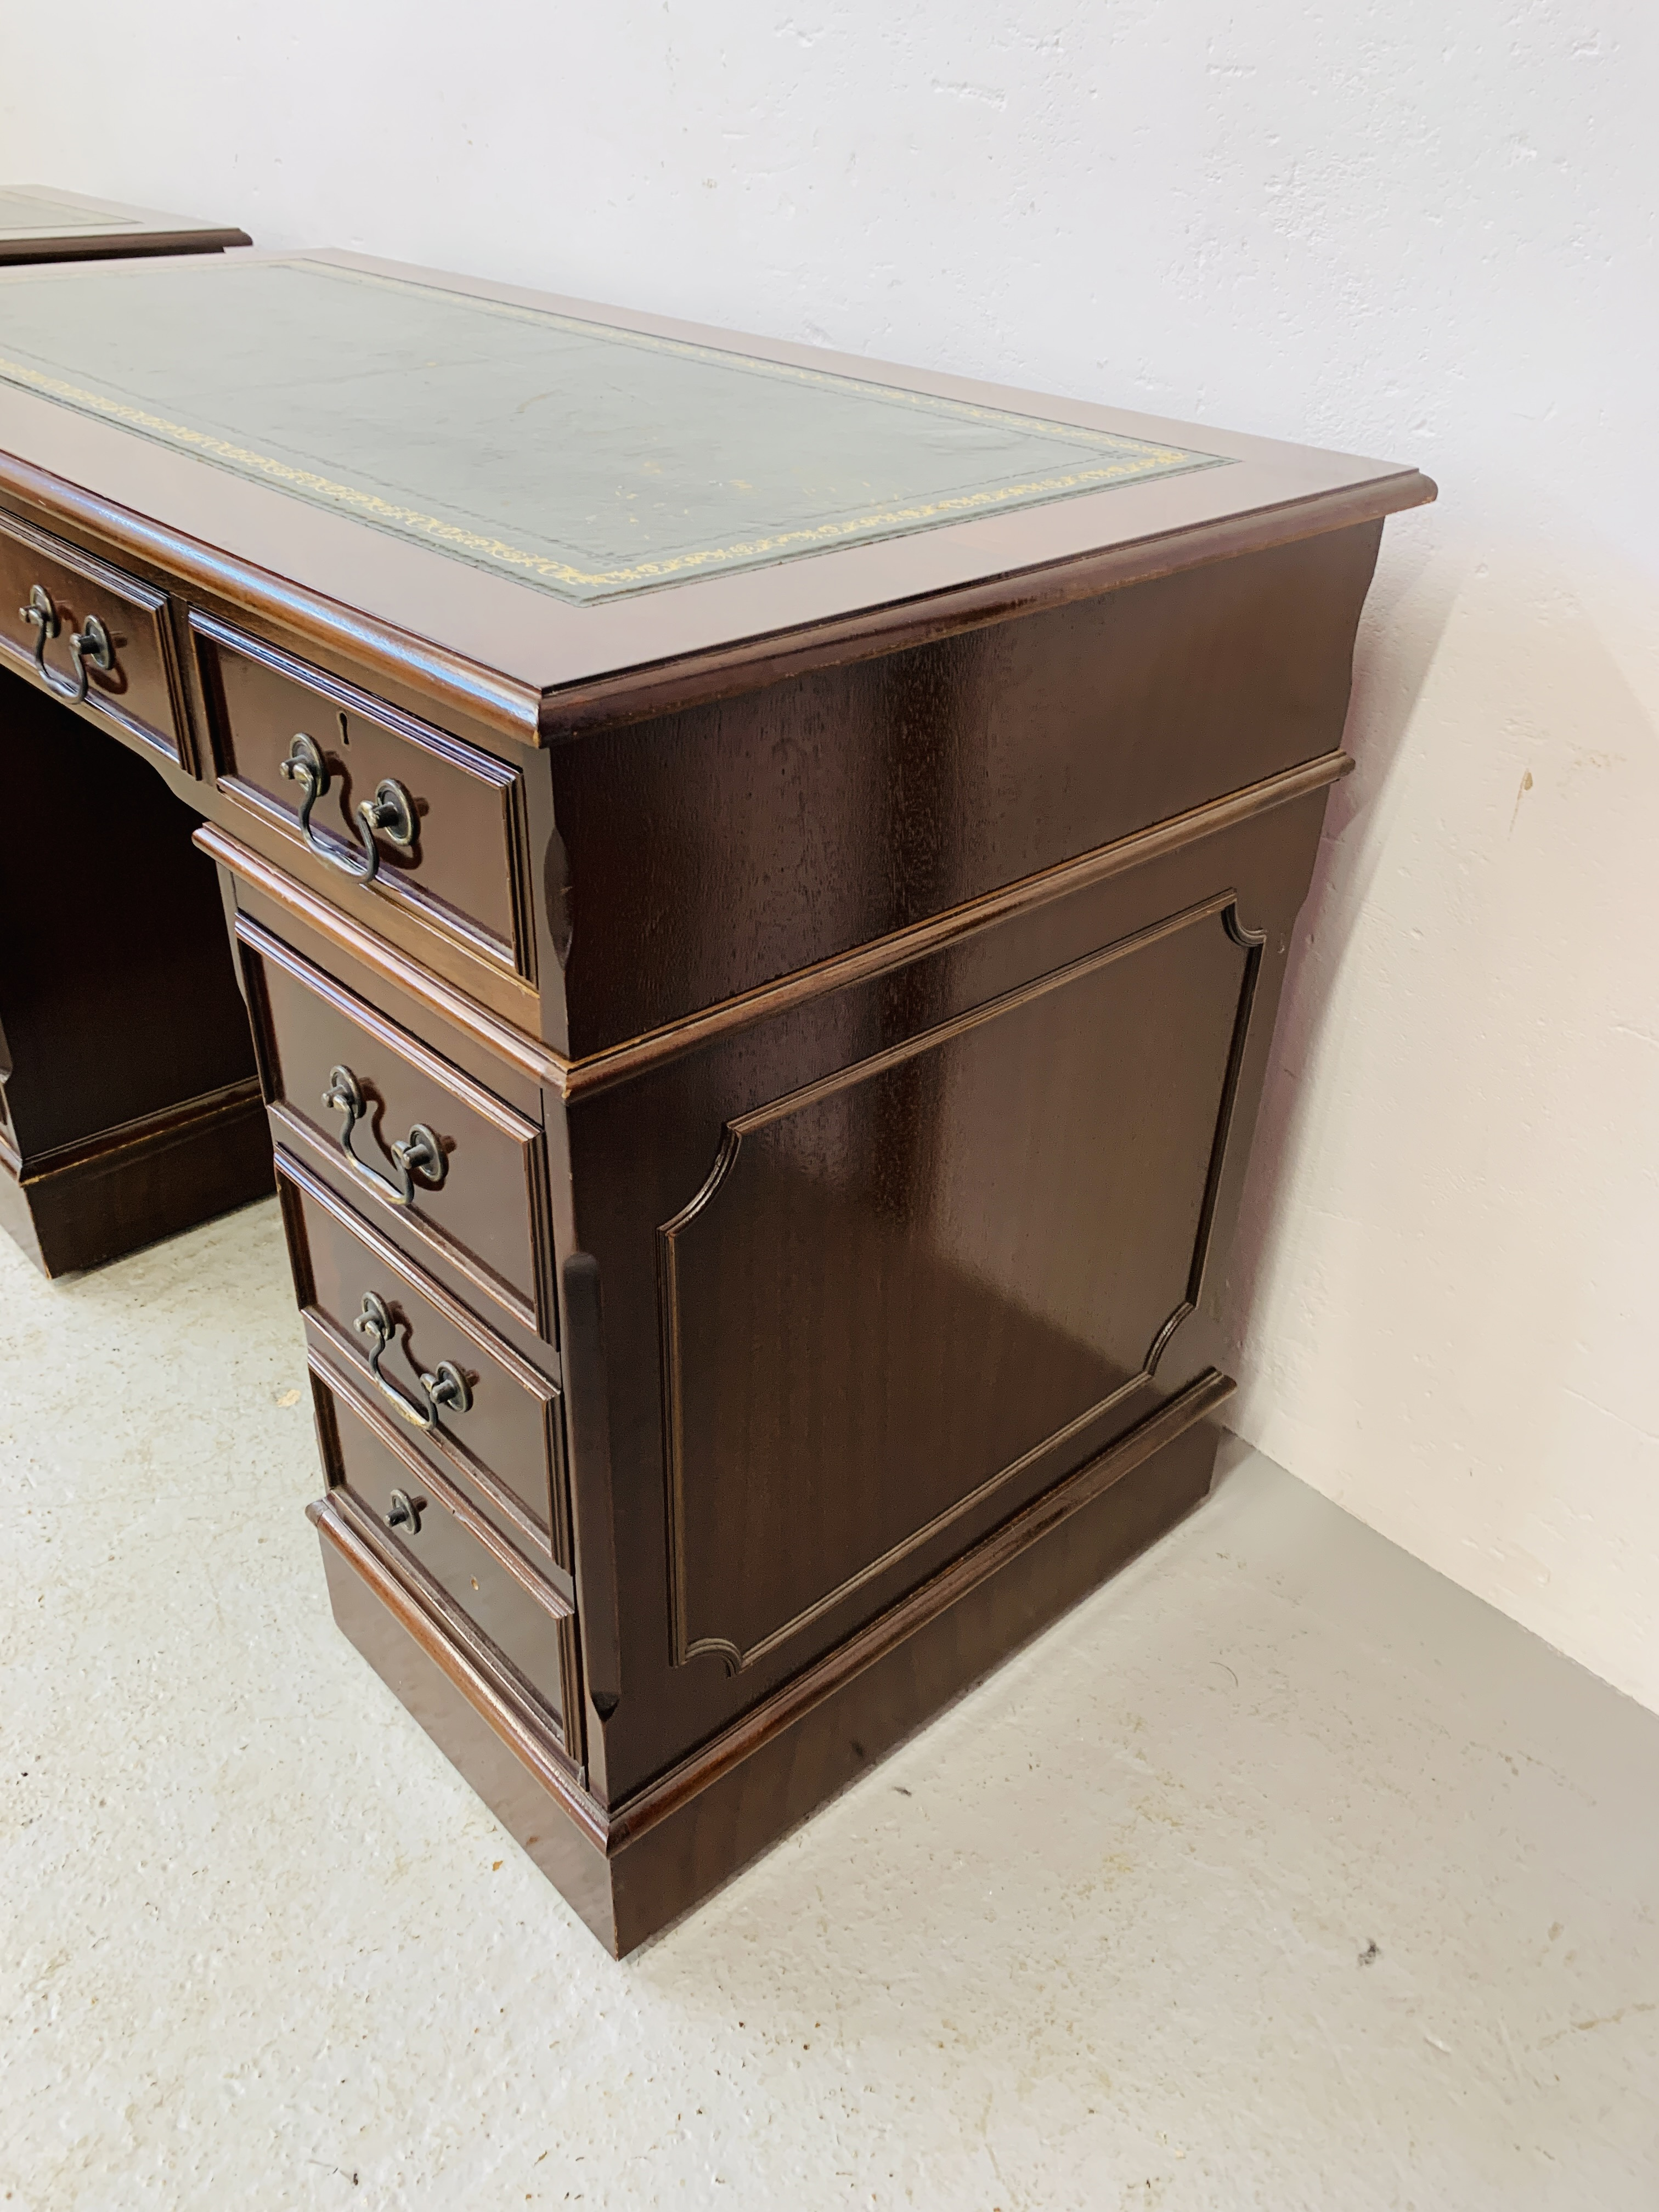 A REPRODUCTION MAHOGANY FINISH NINE DRAWER KNEE HOLE DESK WITH GREEN TOOLED LEATHER INSERT TO TOP - Image 5 of 14